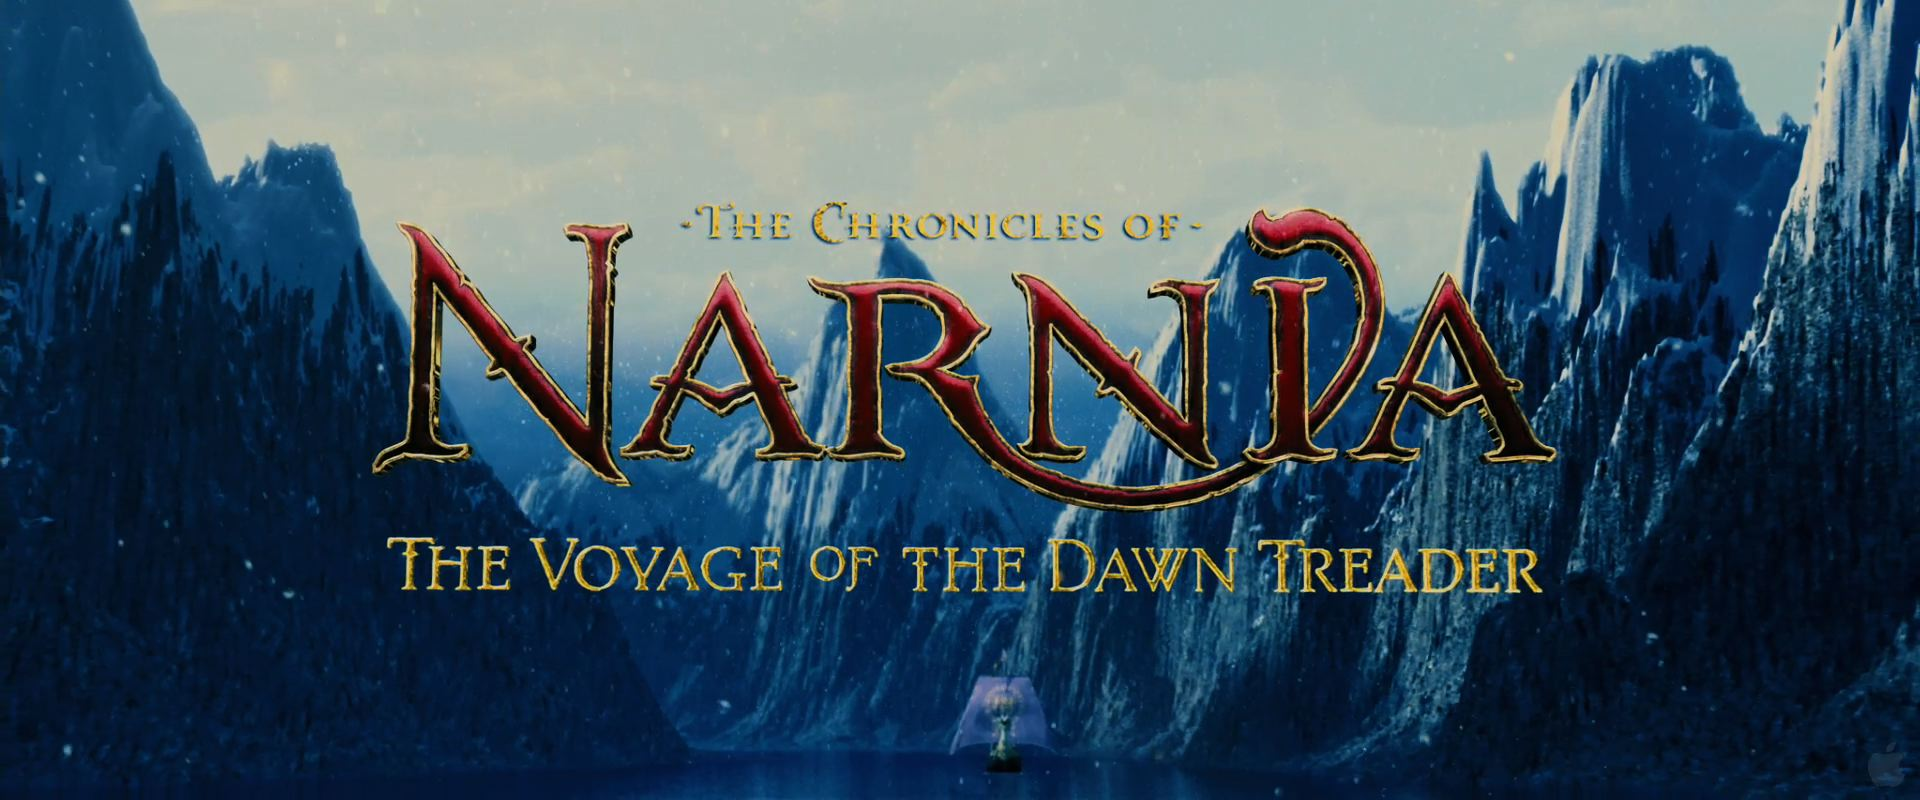 1920x800 - The Chronicles of Narnia: The Voyage of the Dawn Treader Wallpapers 10